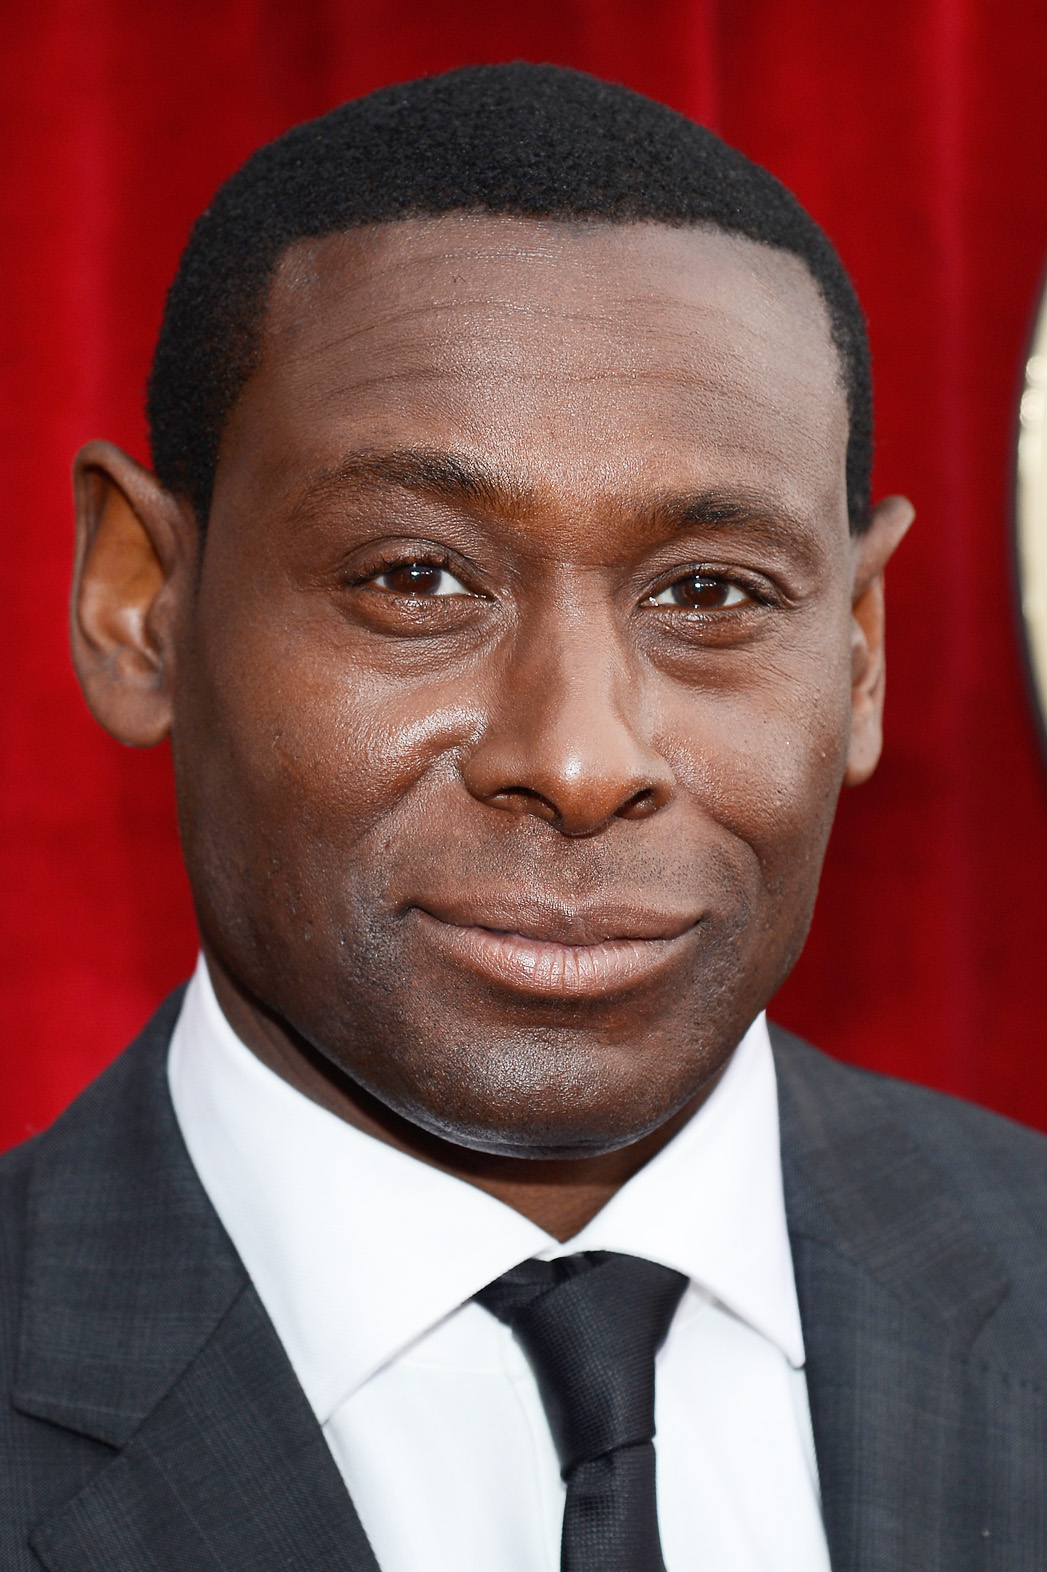 David Harewood SAG Awards Arrivals - P 2013